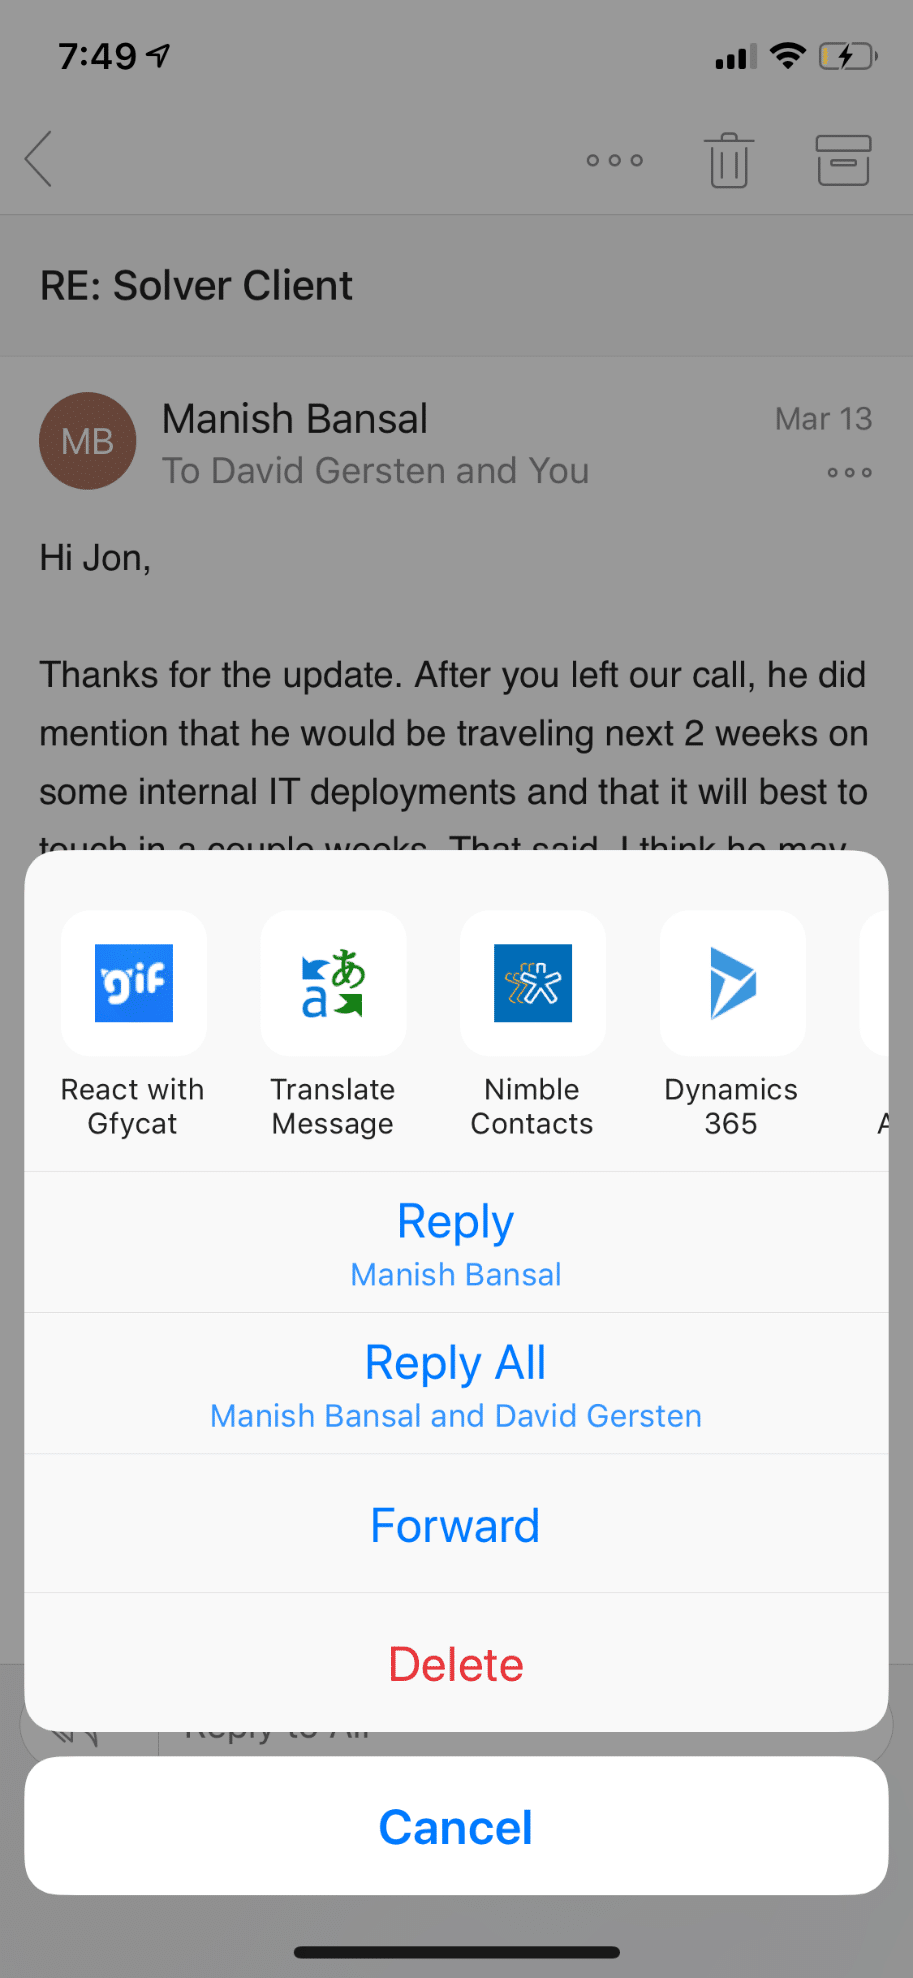 Outlook and Dynamics 365 mobile apps for iOS – Dynamic